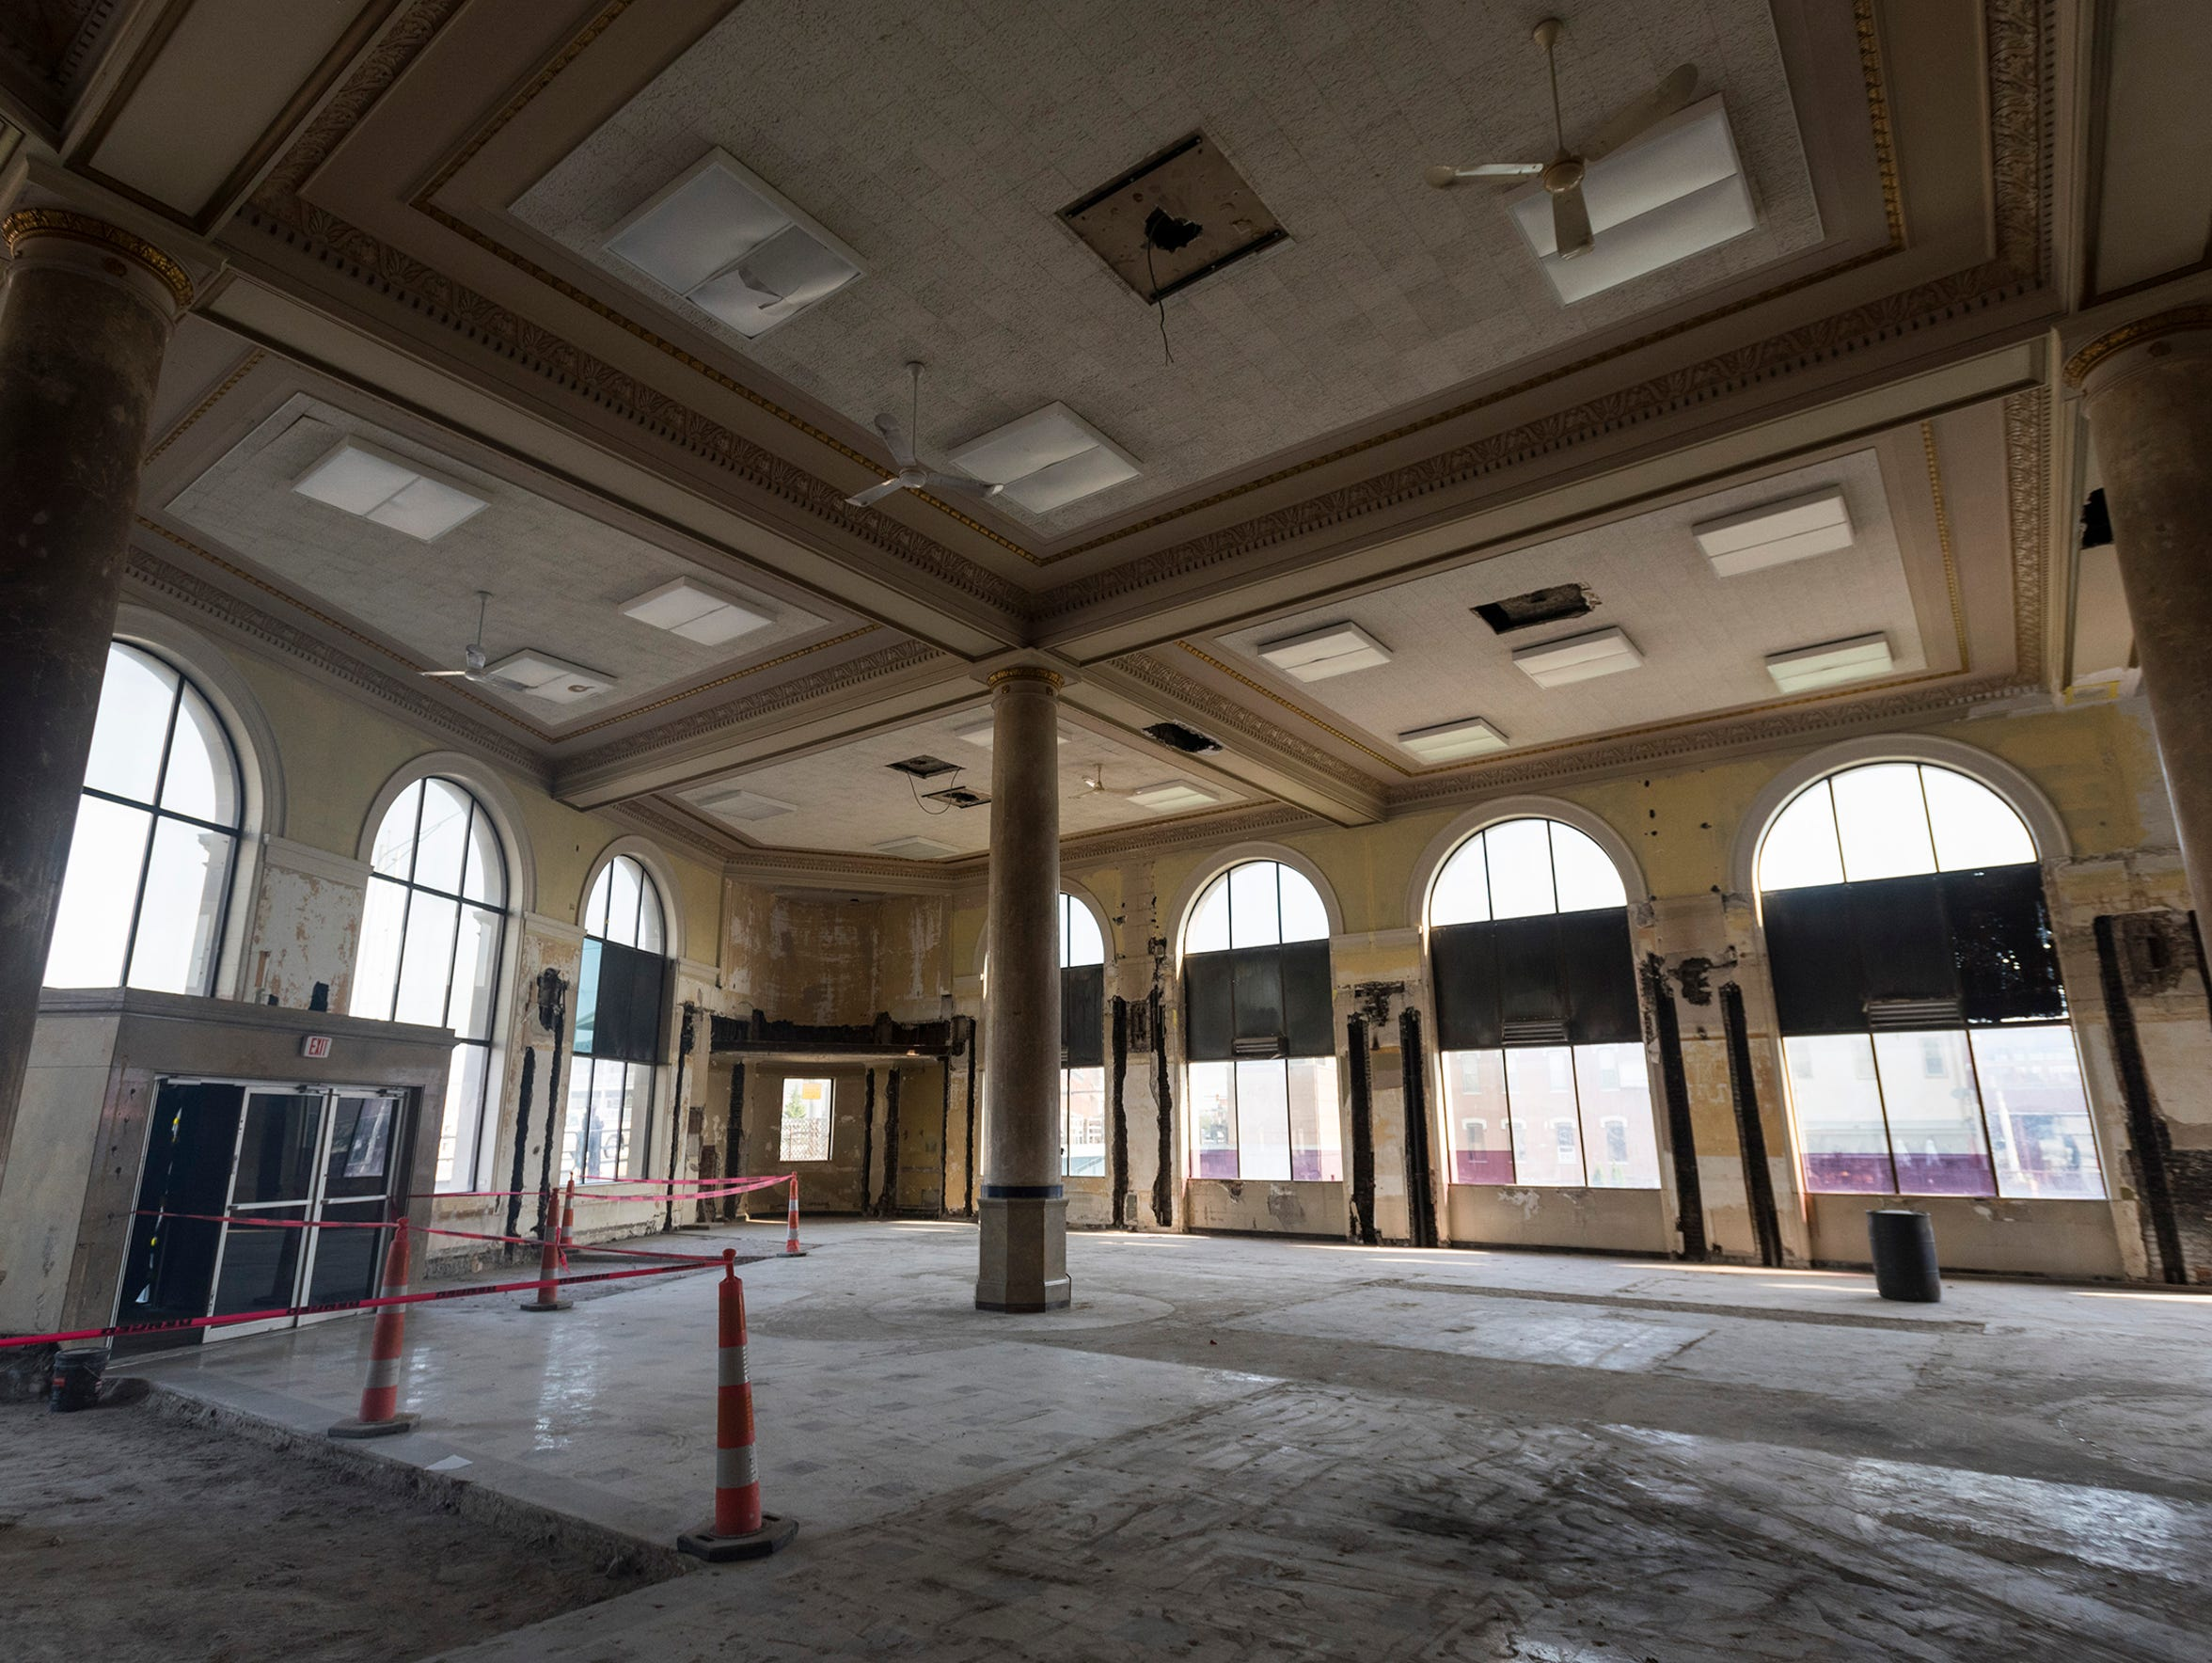 The ballroom in the CityFlats building is pictured after the former bank's mezzanine was demolished and before other renovations began in early 2018.